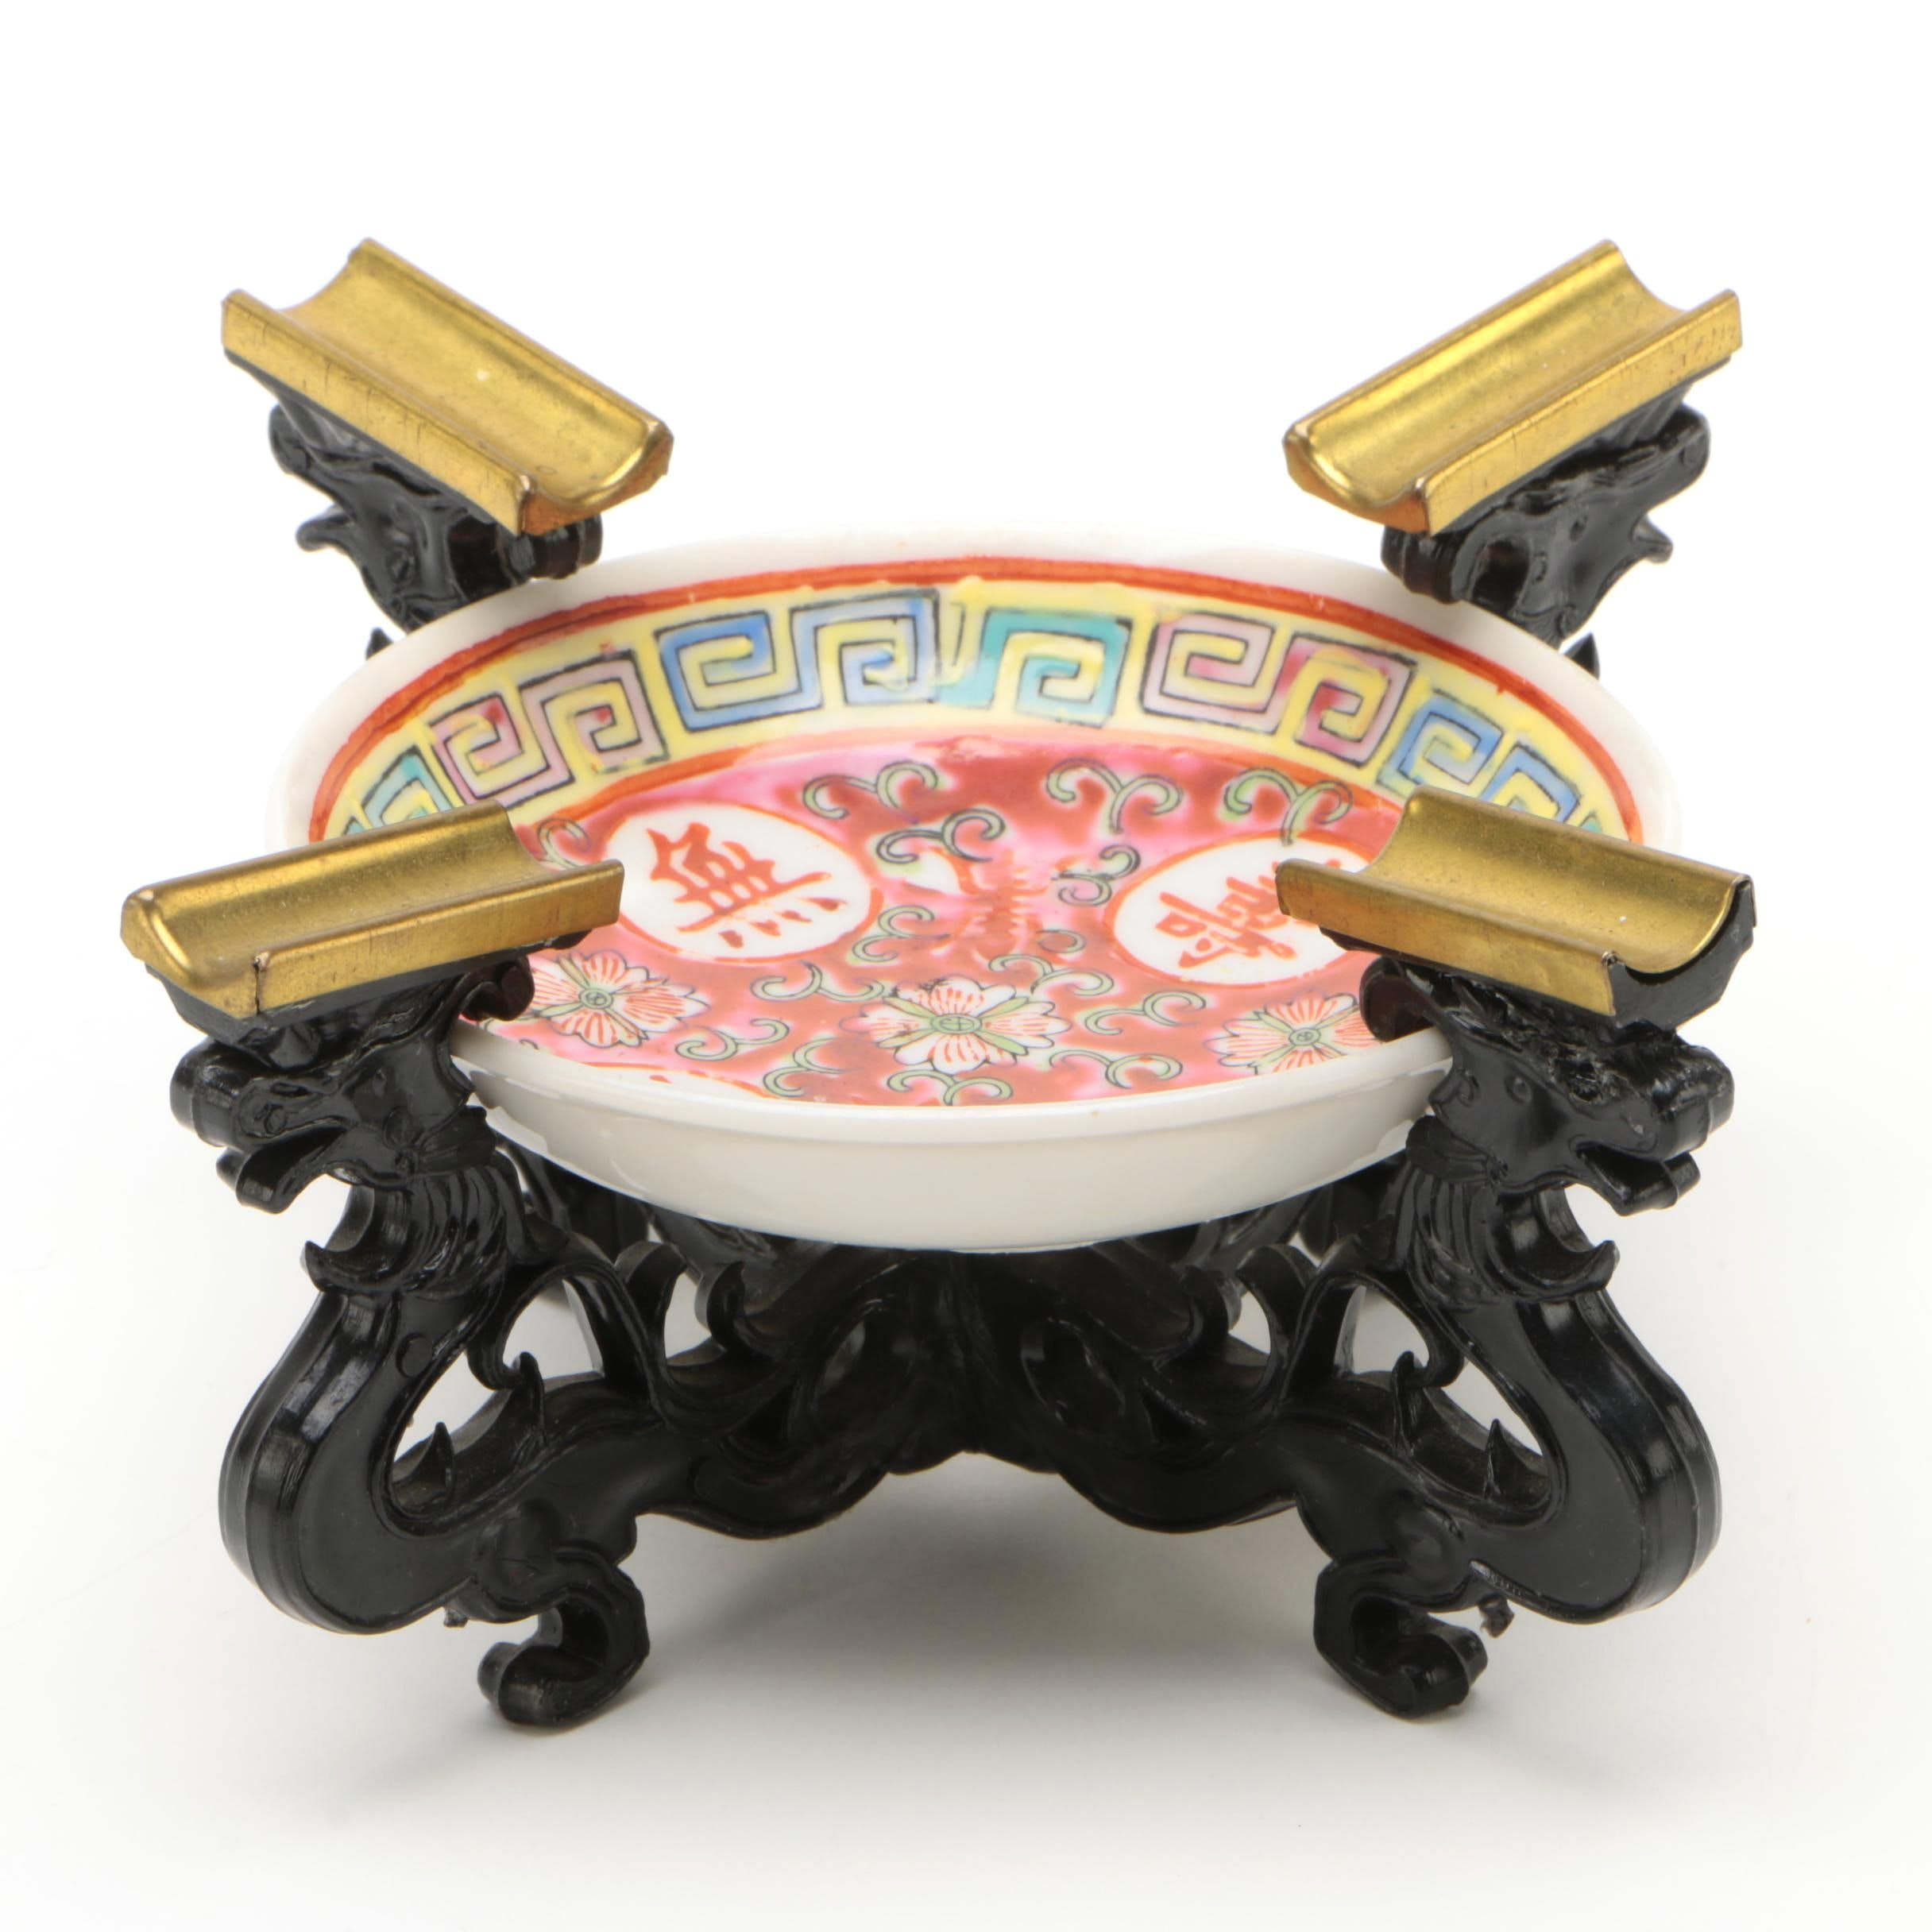 P.C.T. Chinese Porcelain Cigar Ashtray, 1960s